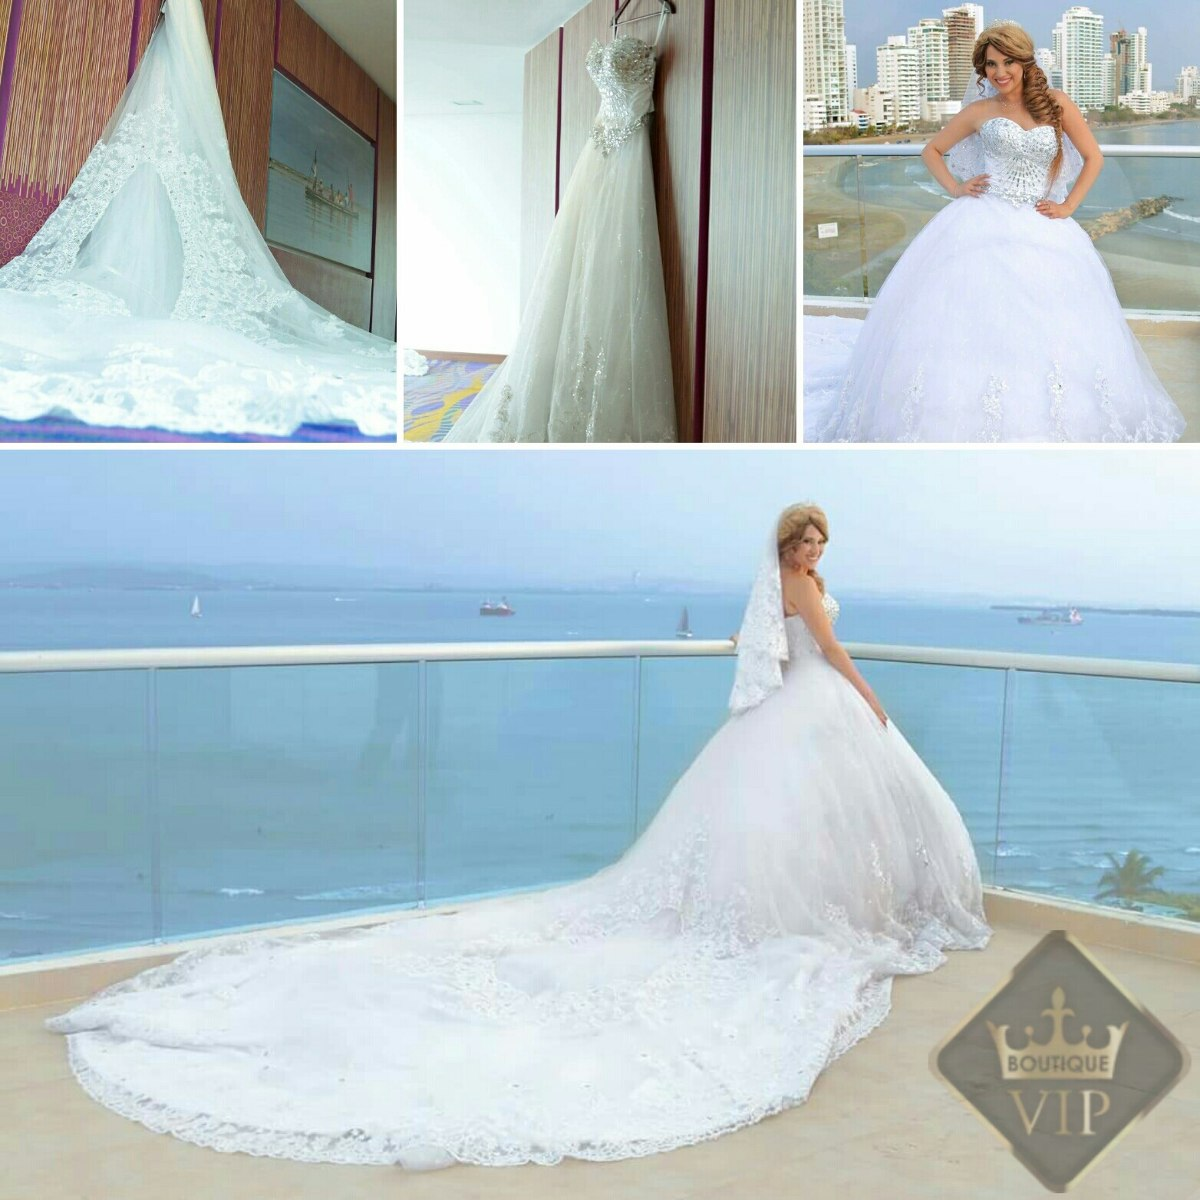 Awesome Alquiler De Vestidos De Novia Images - Wedding Ideas ...